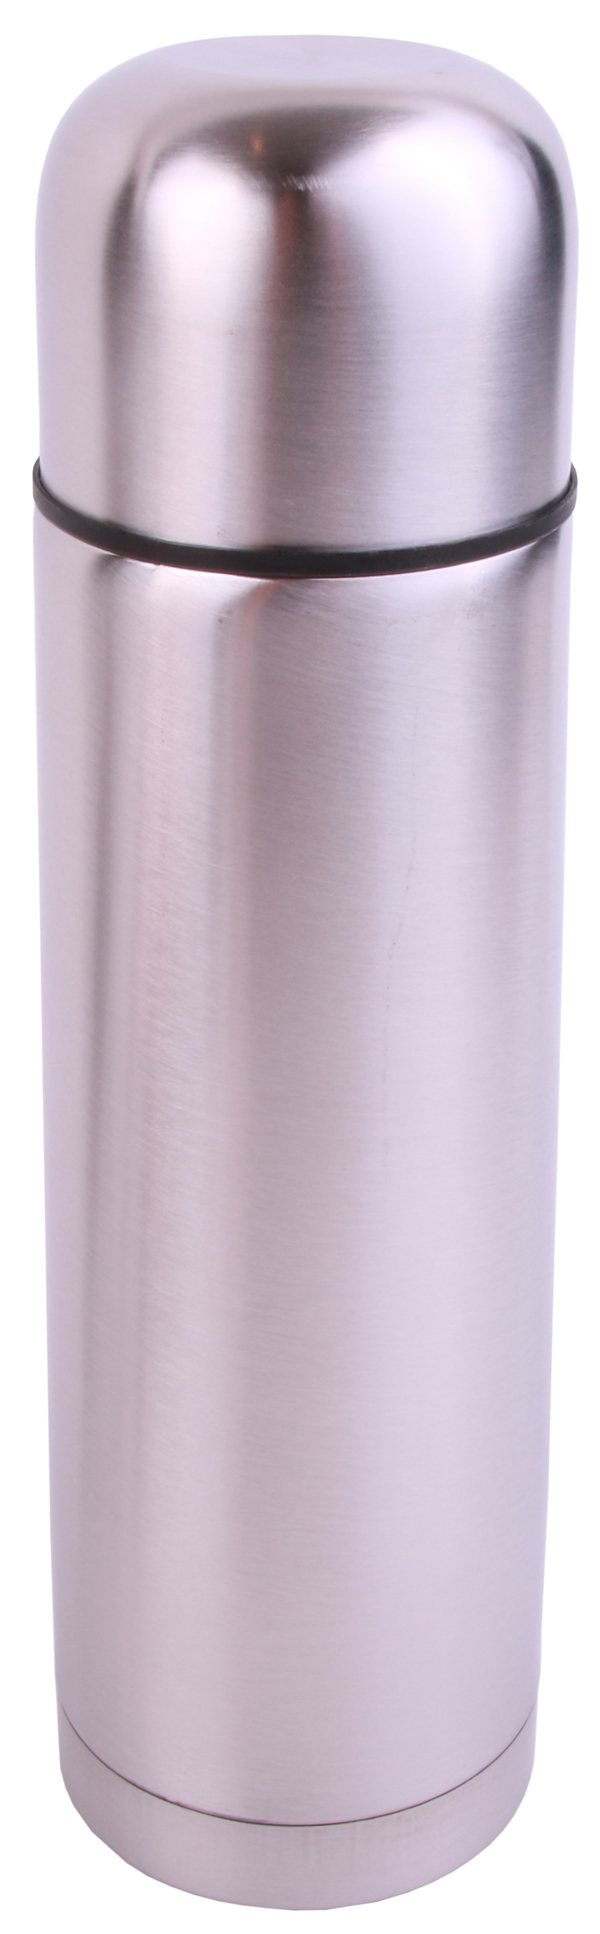 Ultimate Thermos Cup 750ml